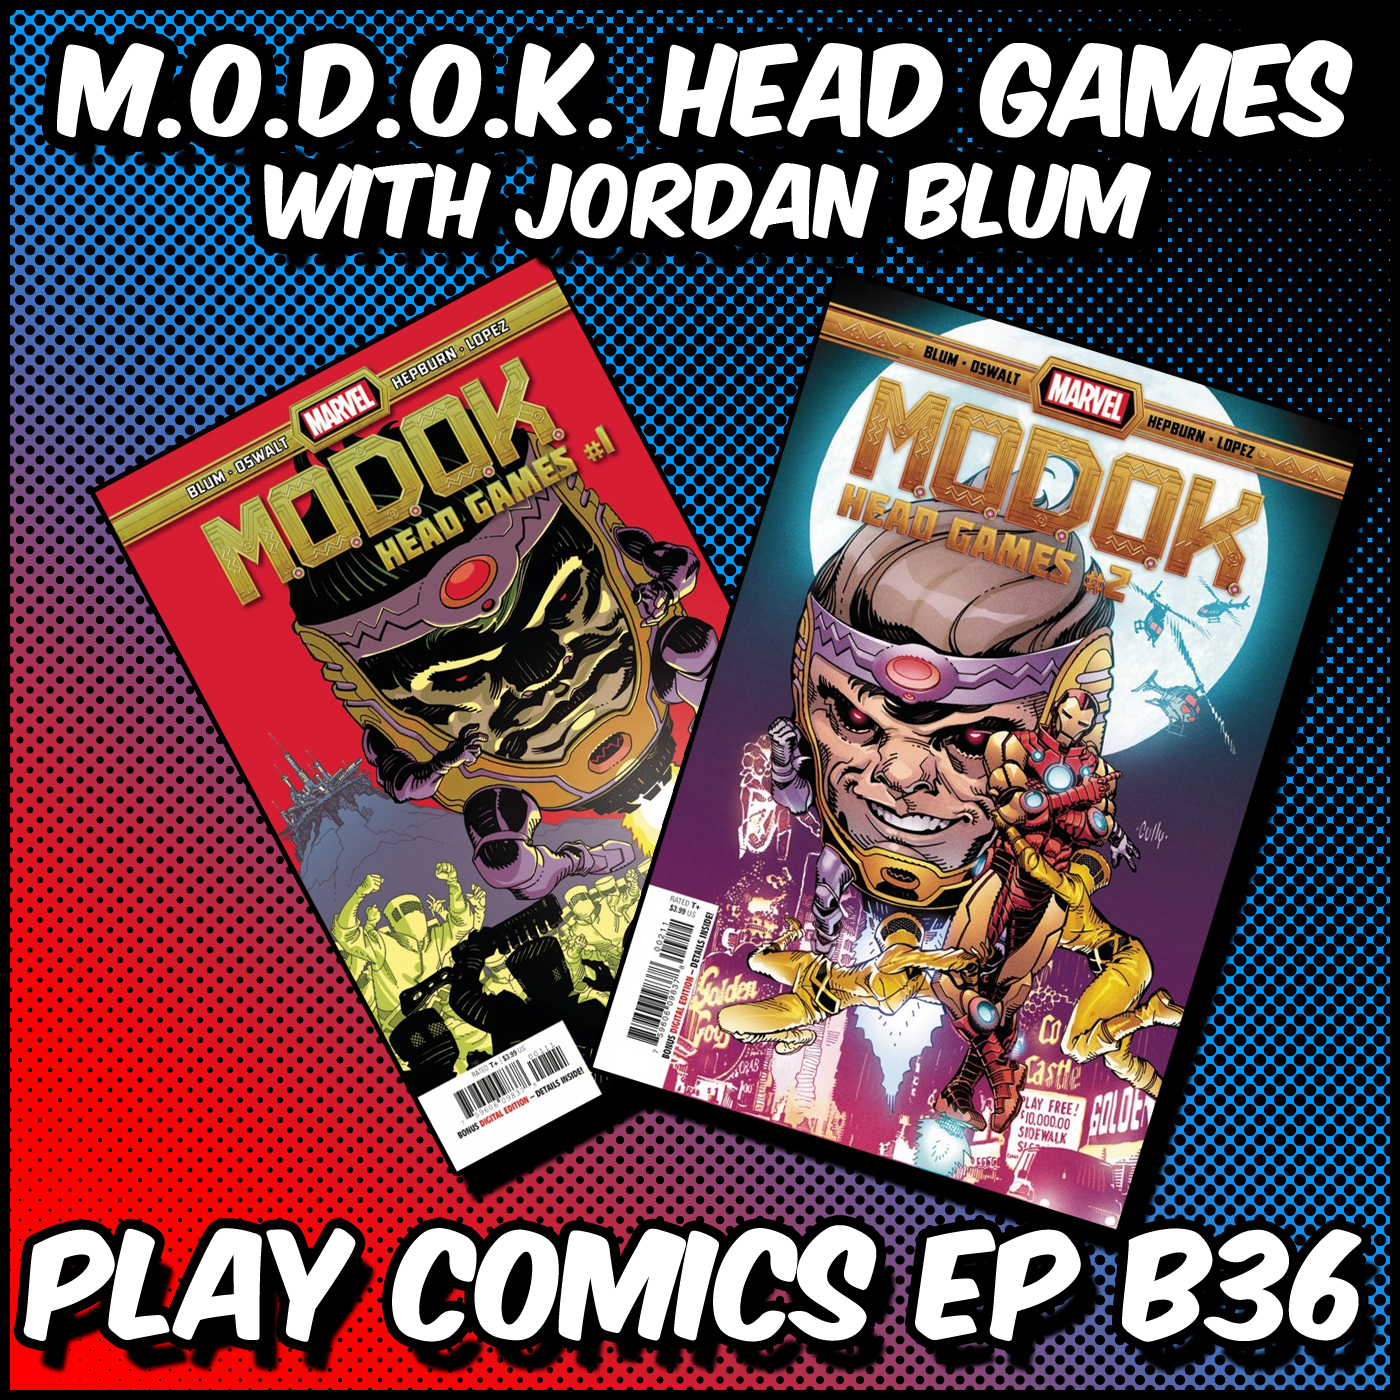 M.O.D.O.K. Head Games with Jordan Blum